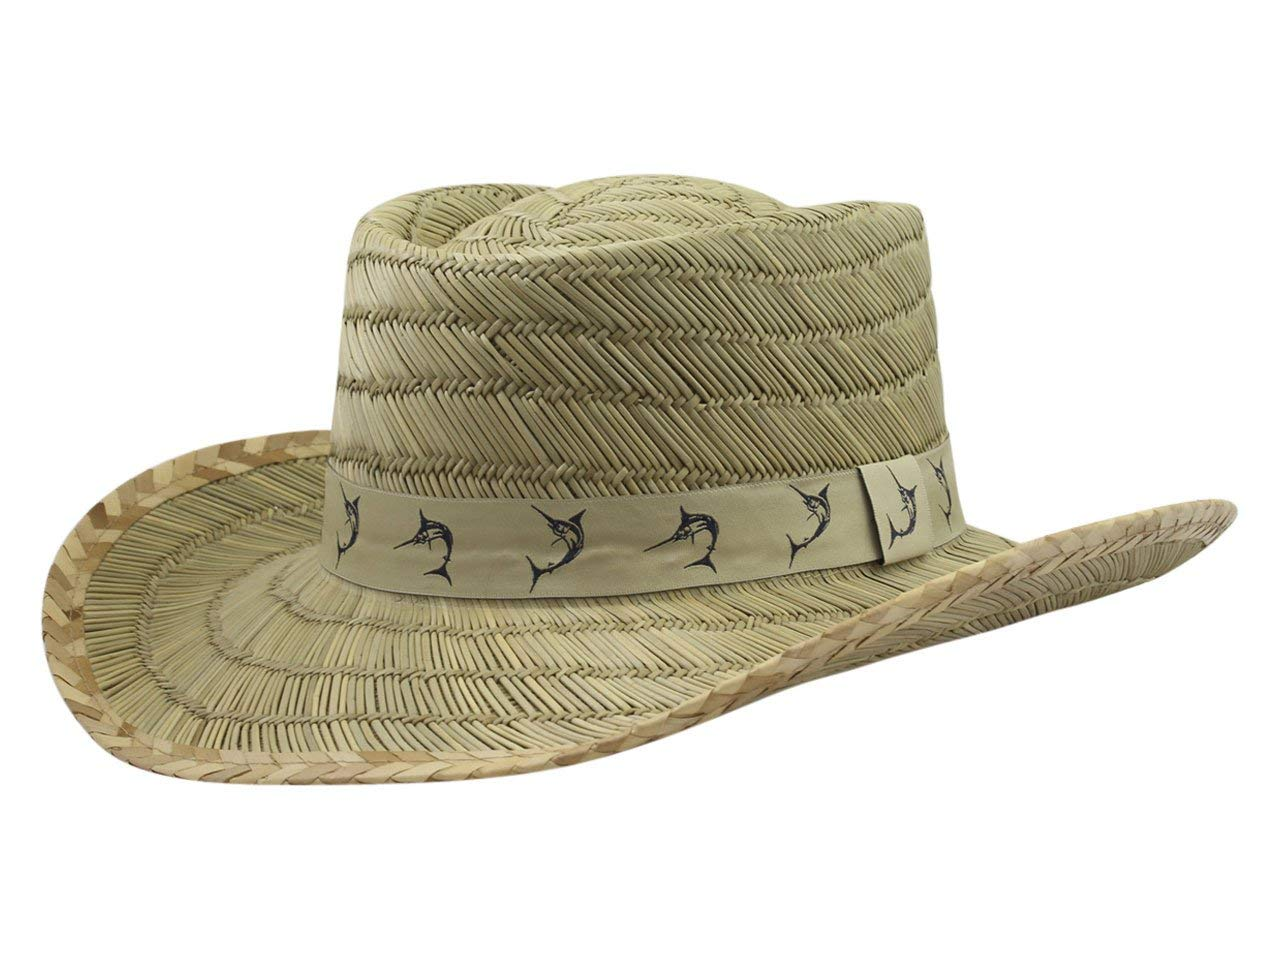 38d60b8d08ee6 Dorfman-Pacific RUSH GAMBLER W MARLIN TAPE Mens Headwear-Assorted-Natural